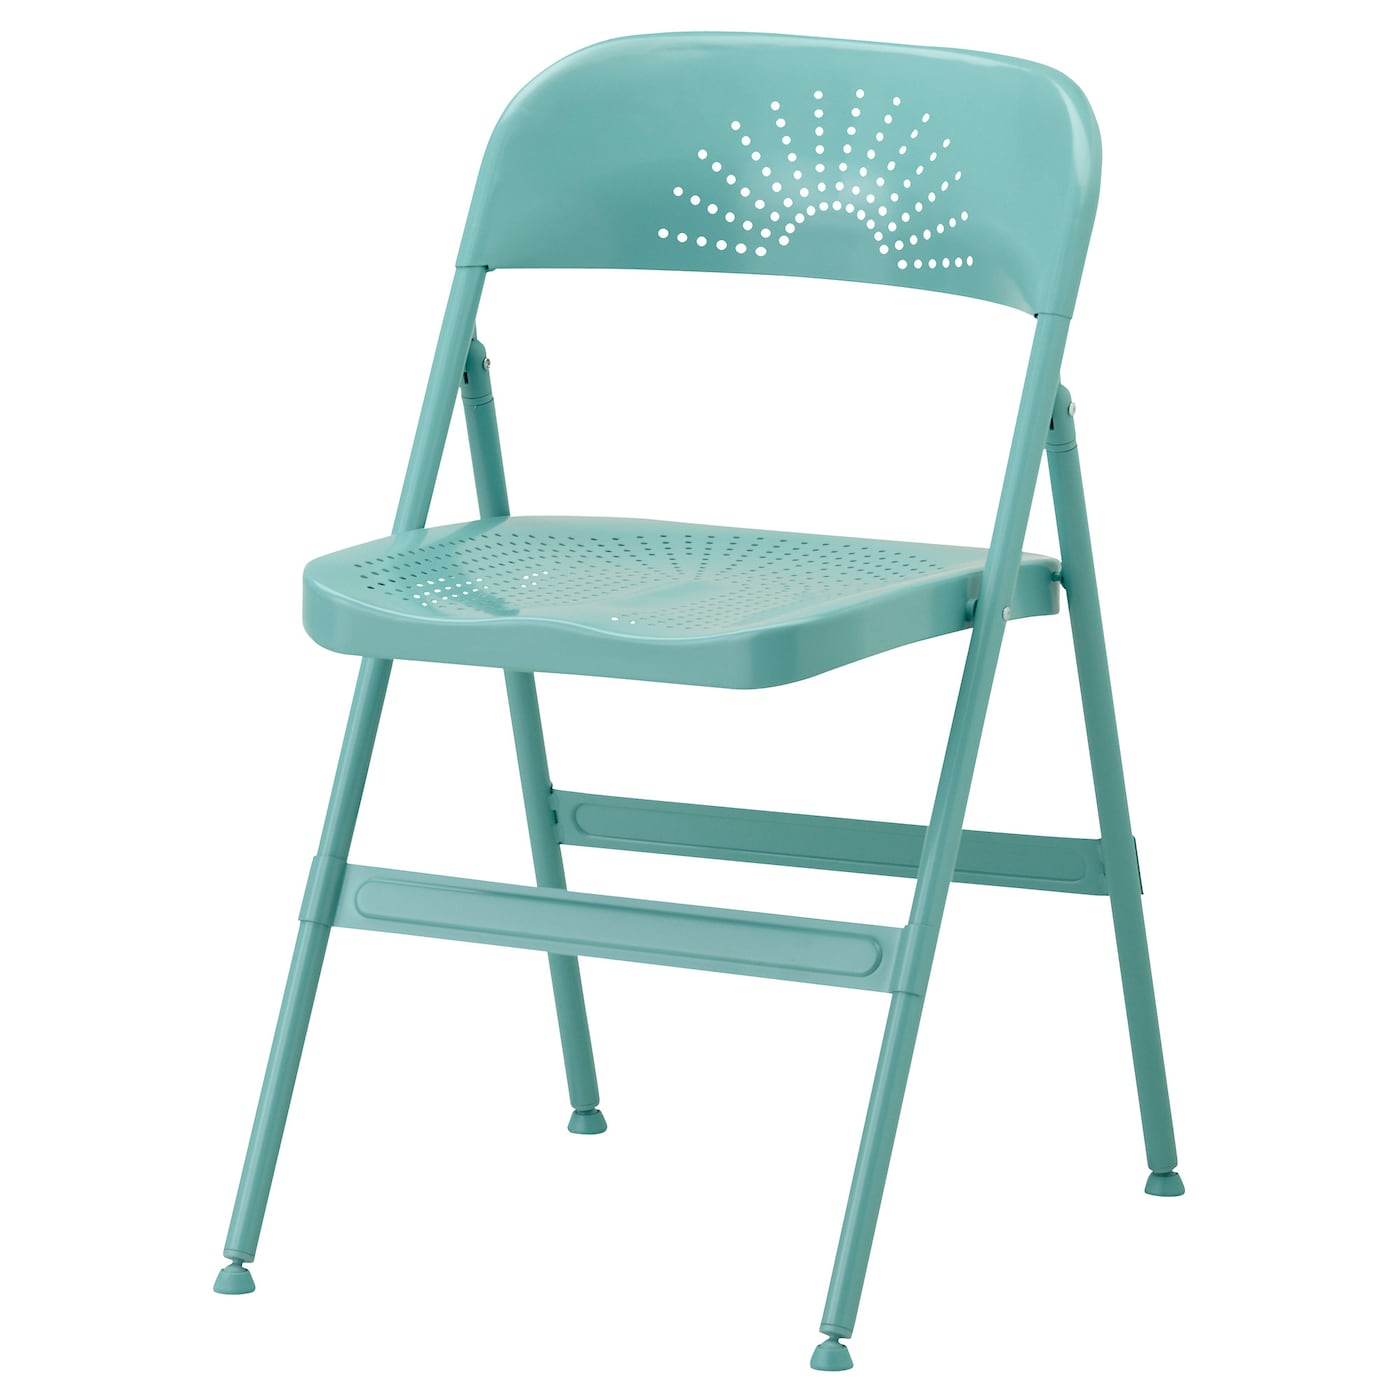 FRODE Folding Chair Turquoise IKEA - Collapsible chairs